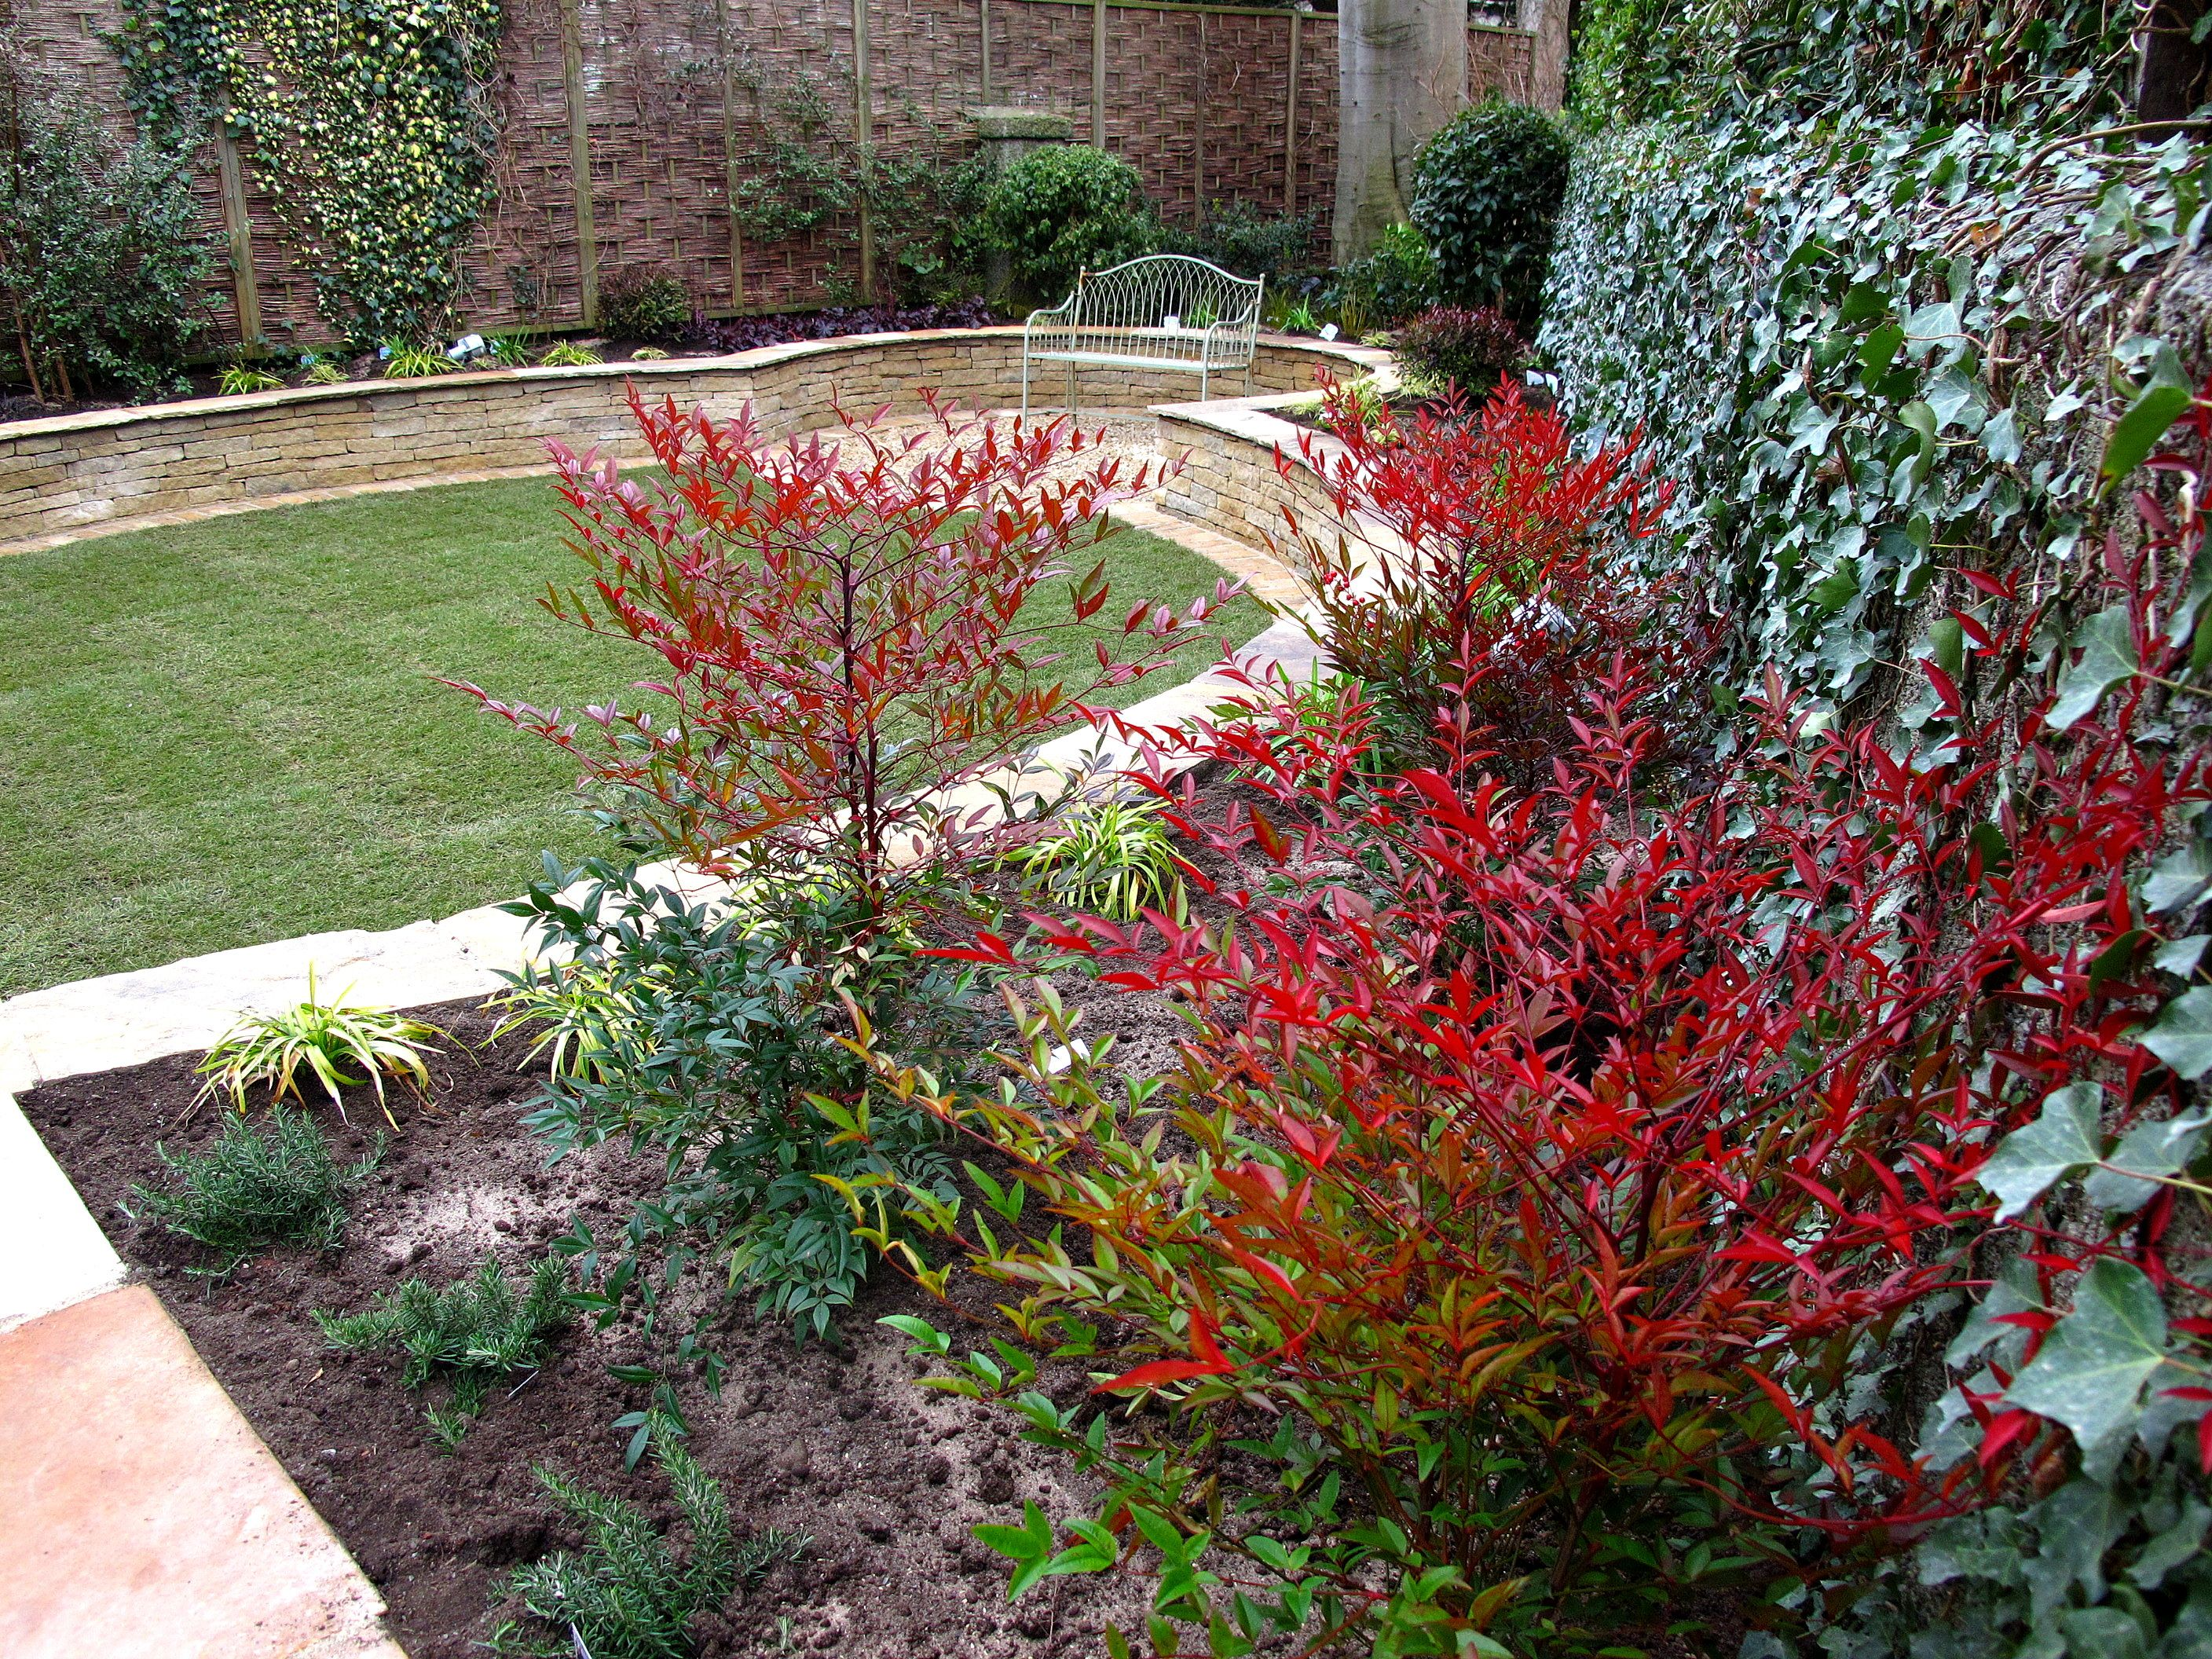 Small Garden Ideas Ireland Raised Bed Gardening Design & Landscaping Ideas,terenure